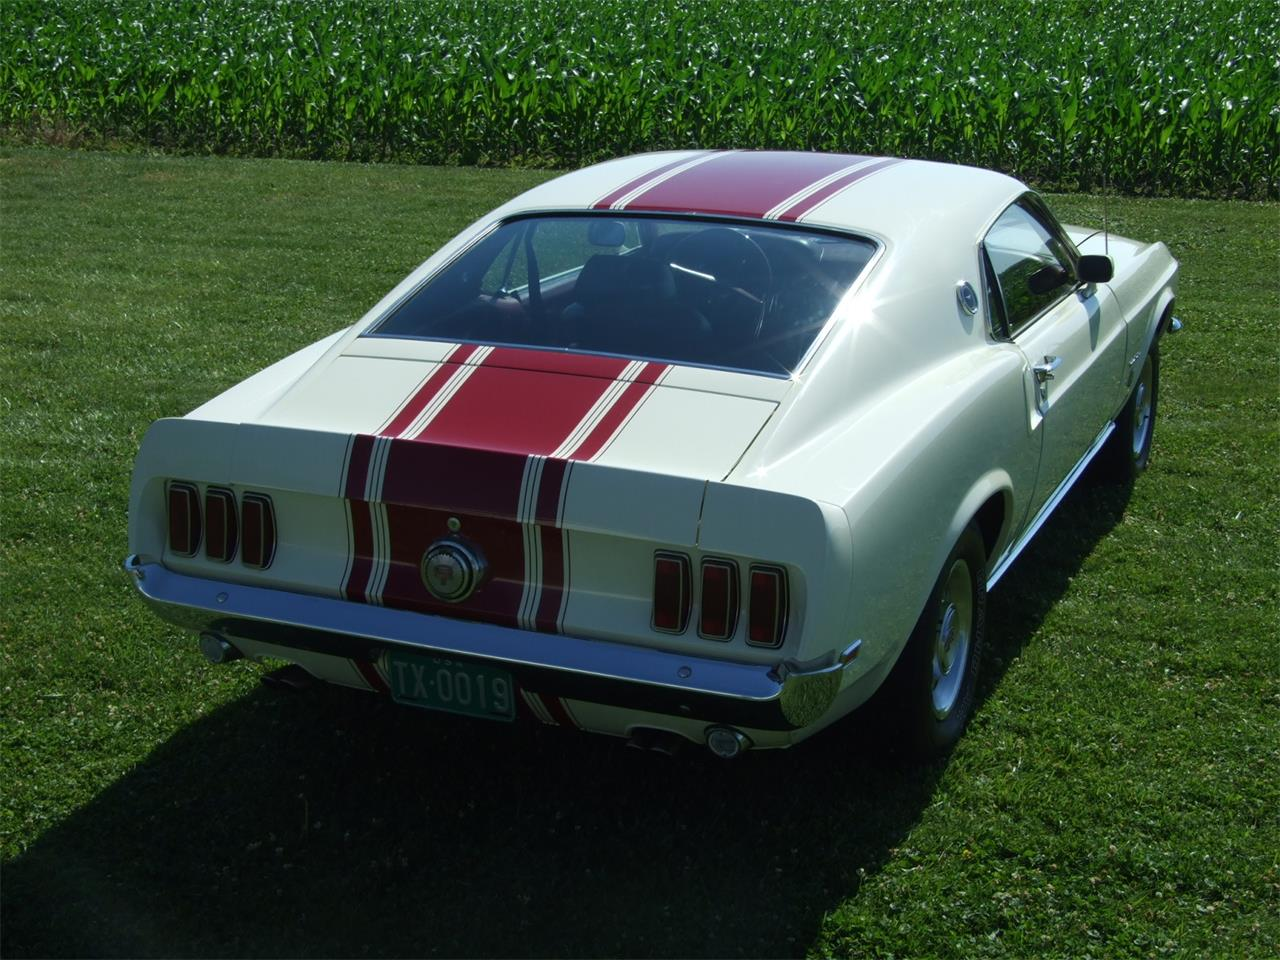 Large Picture of 1969 Ford Mustang located in Indiana - $34,500.00 Offered by Auto Connection, Inc. - JKJU